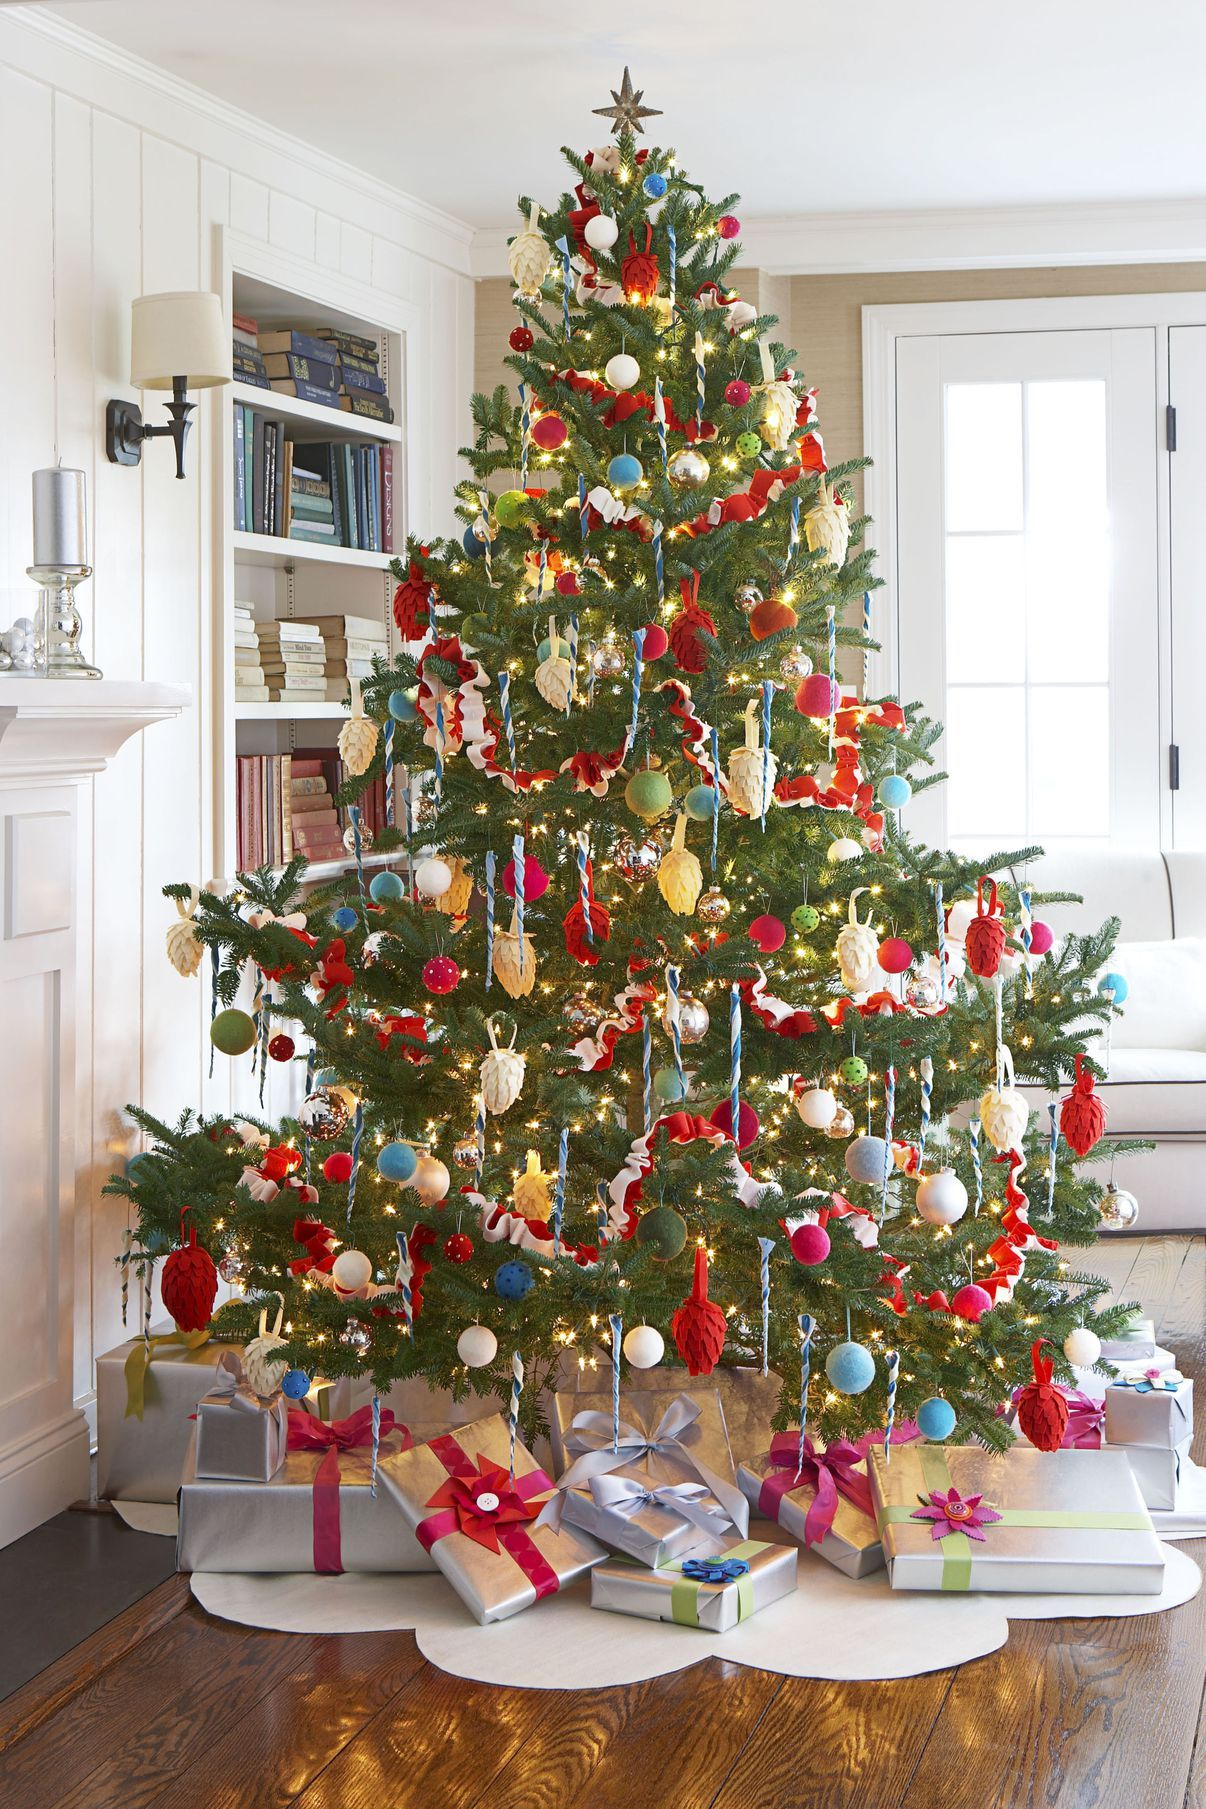 60 Unique Christmas Tree Ideas for a Holiday Celeb